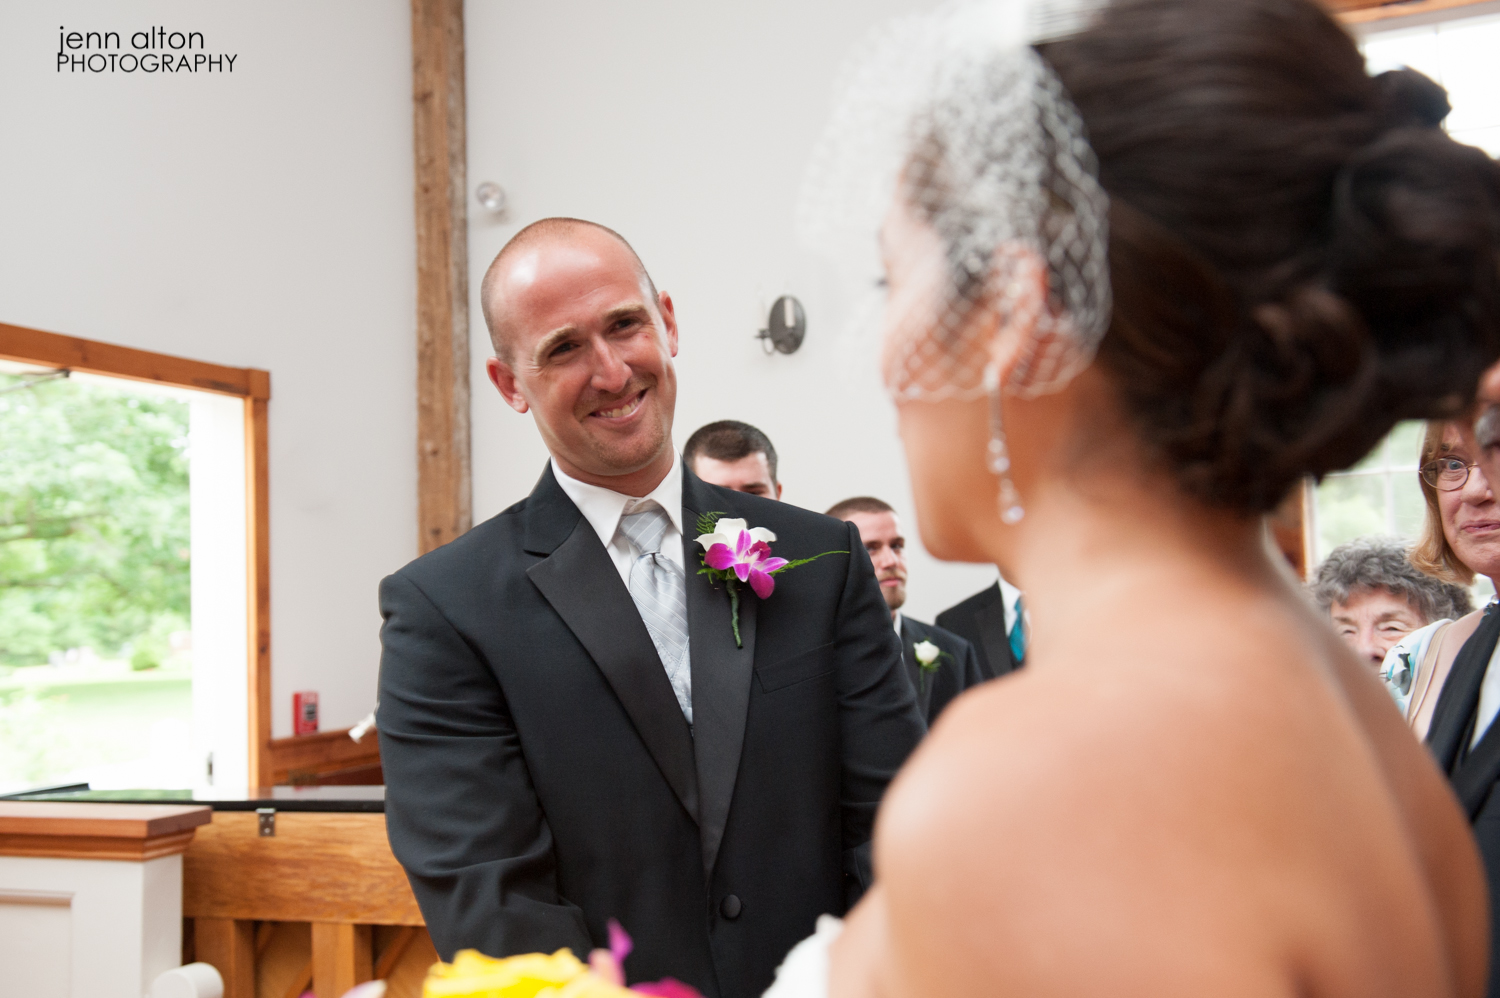 Groom's reaction to bride's entry to the wedding ceremony, Mashpee Old Indian Meeting House